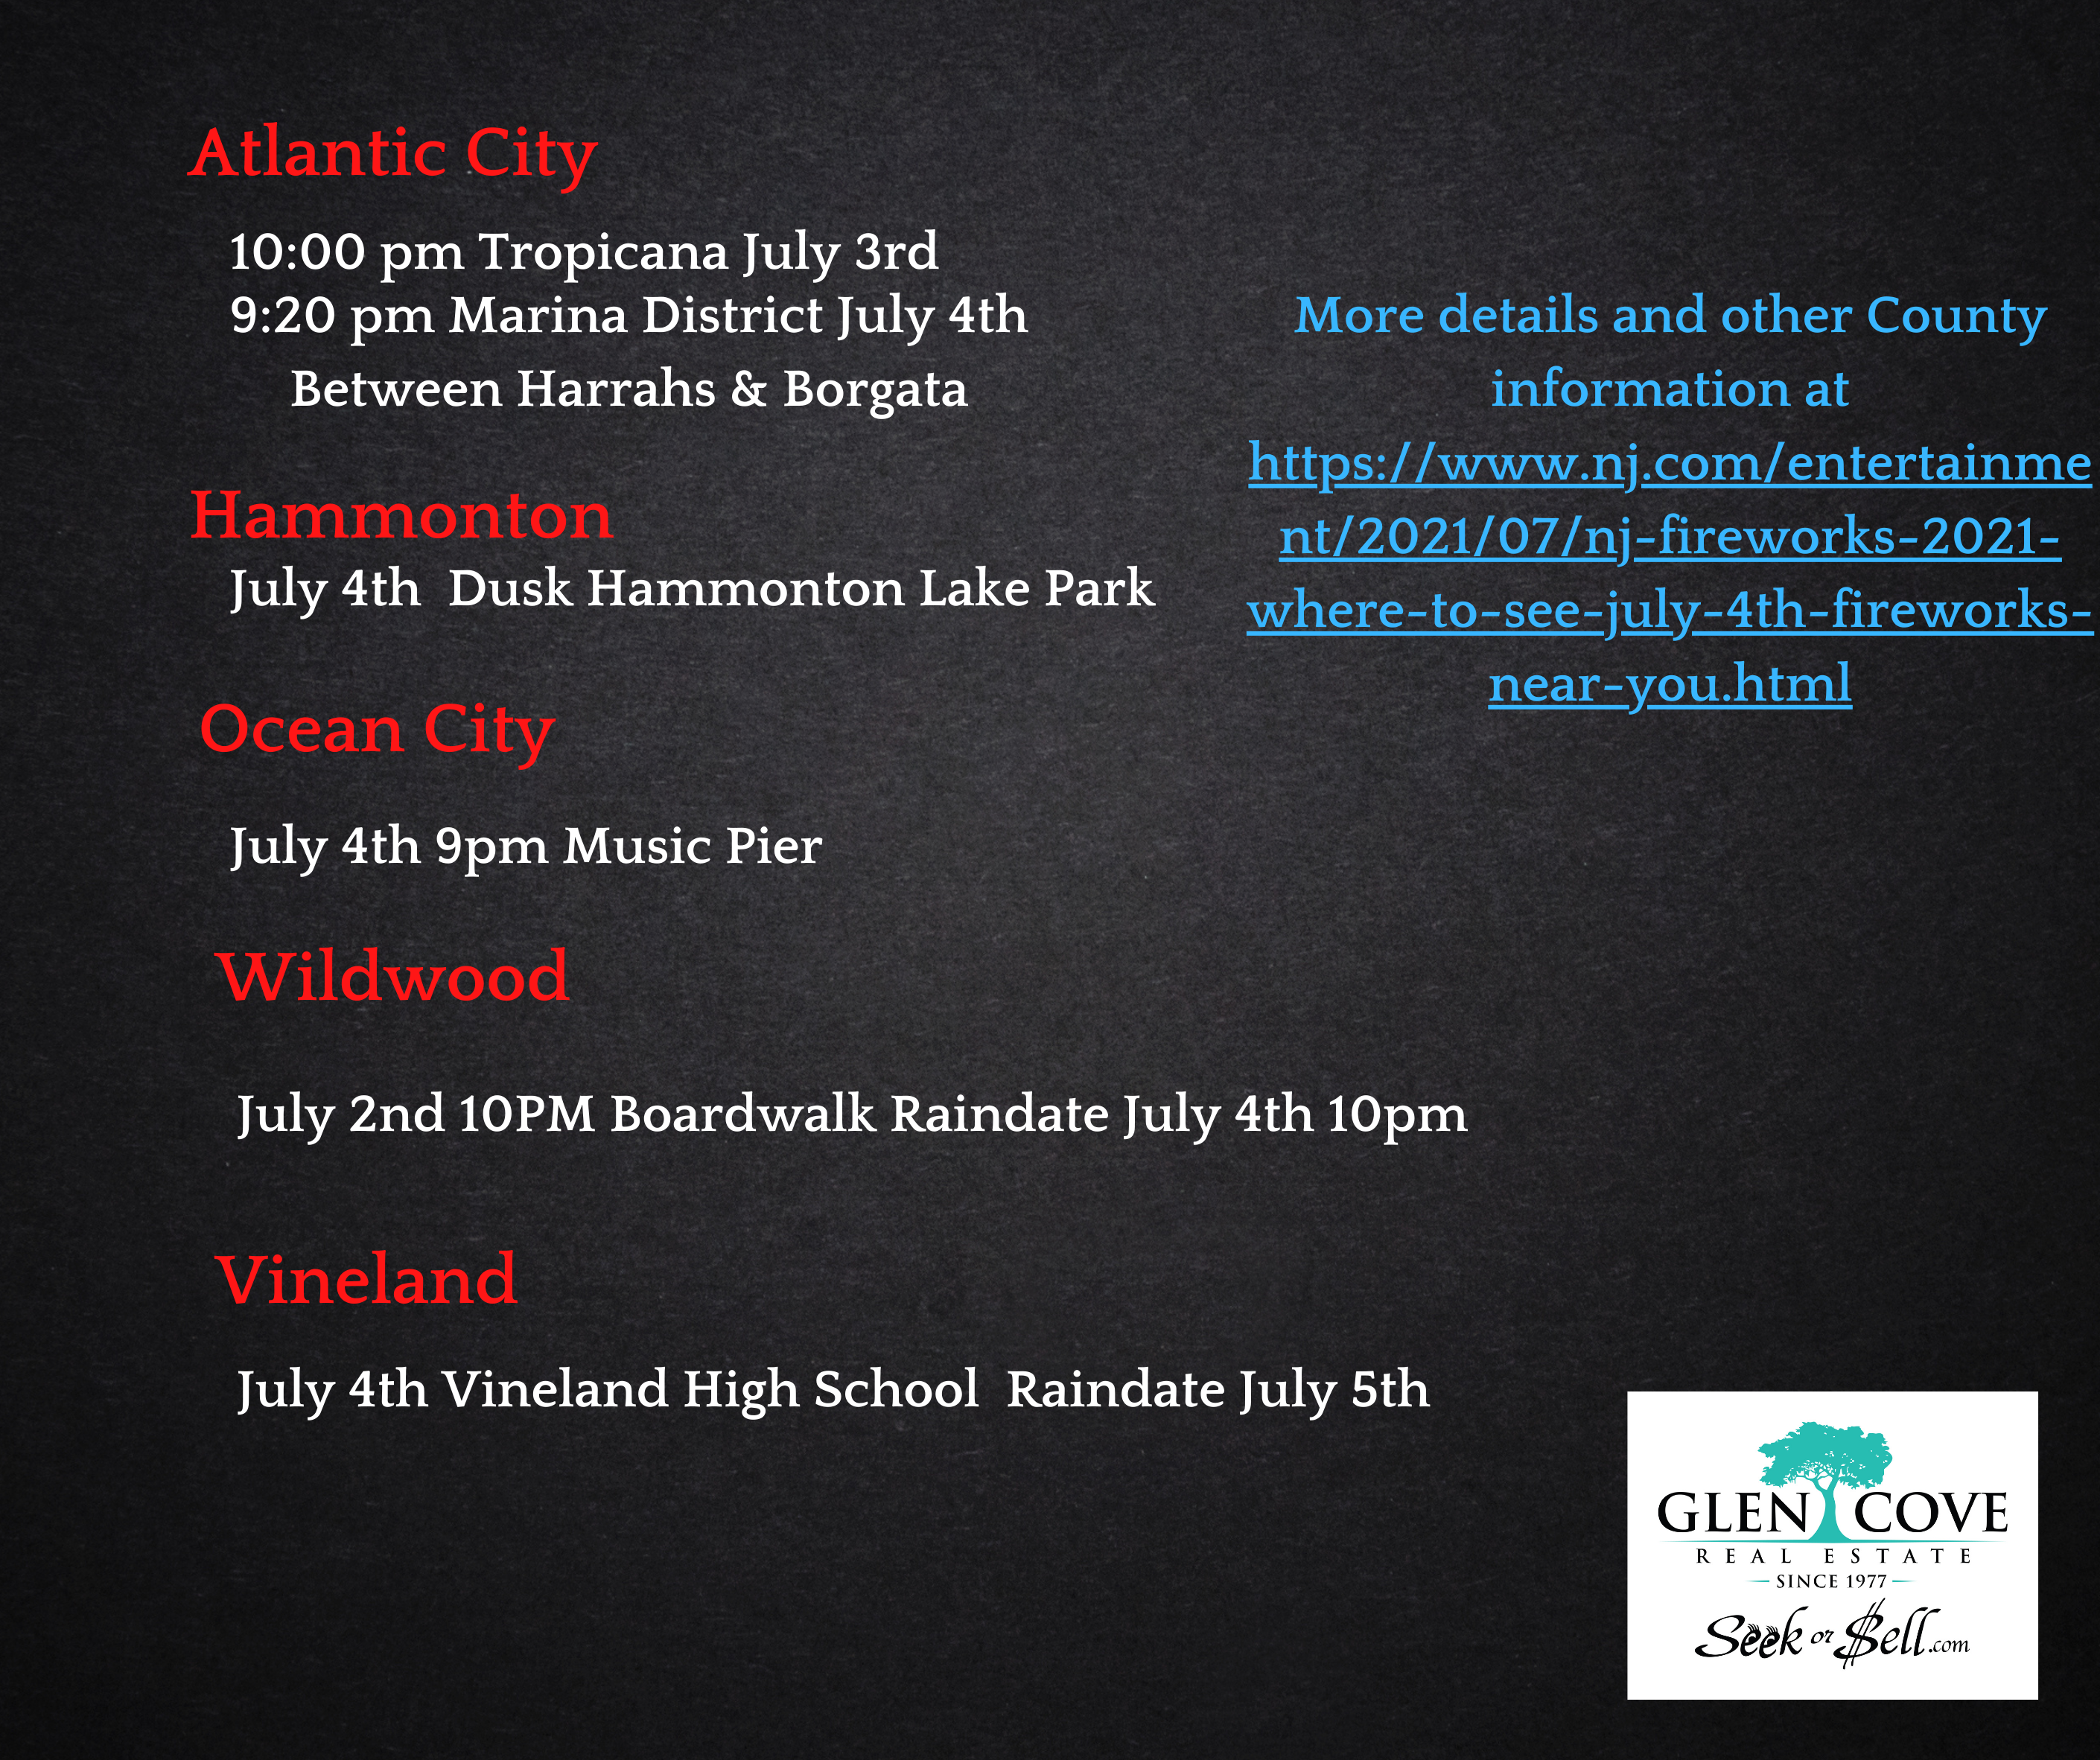 Locations for Fireworks Displays in Atlantic & Cape May County